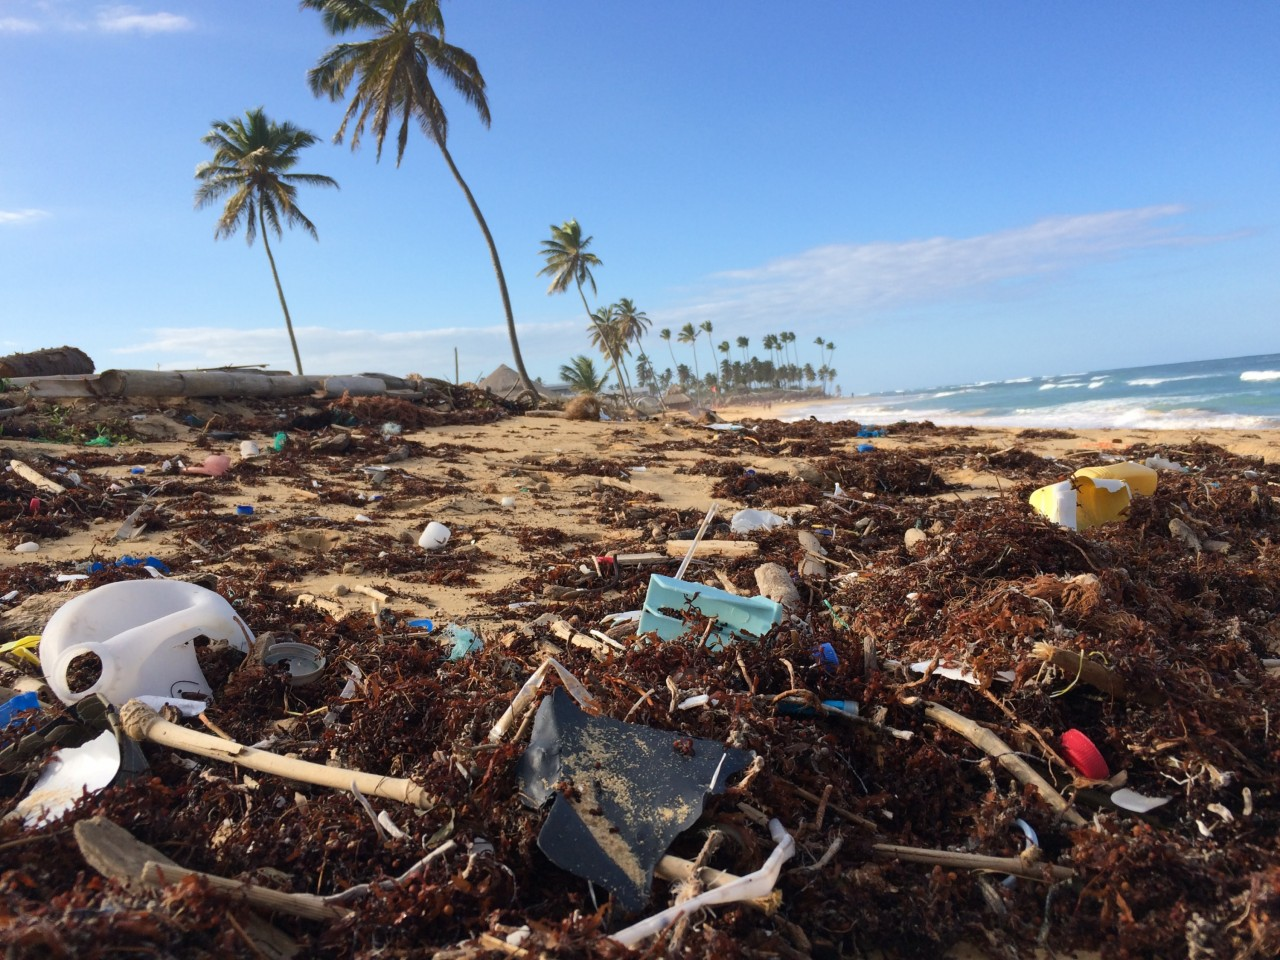 Digital pollution: why creative quantity shouldn't mean worse quality